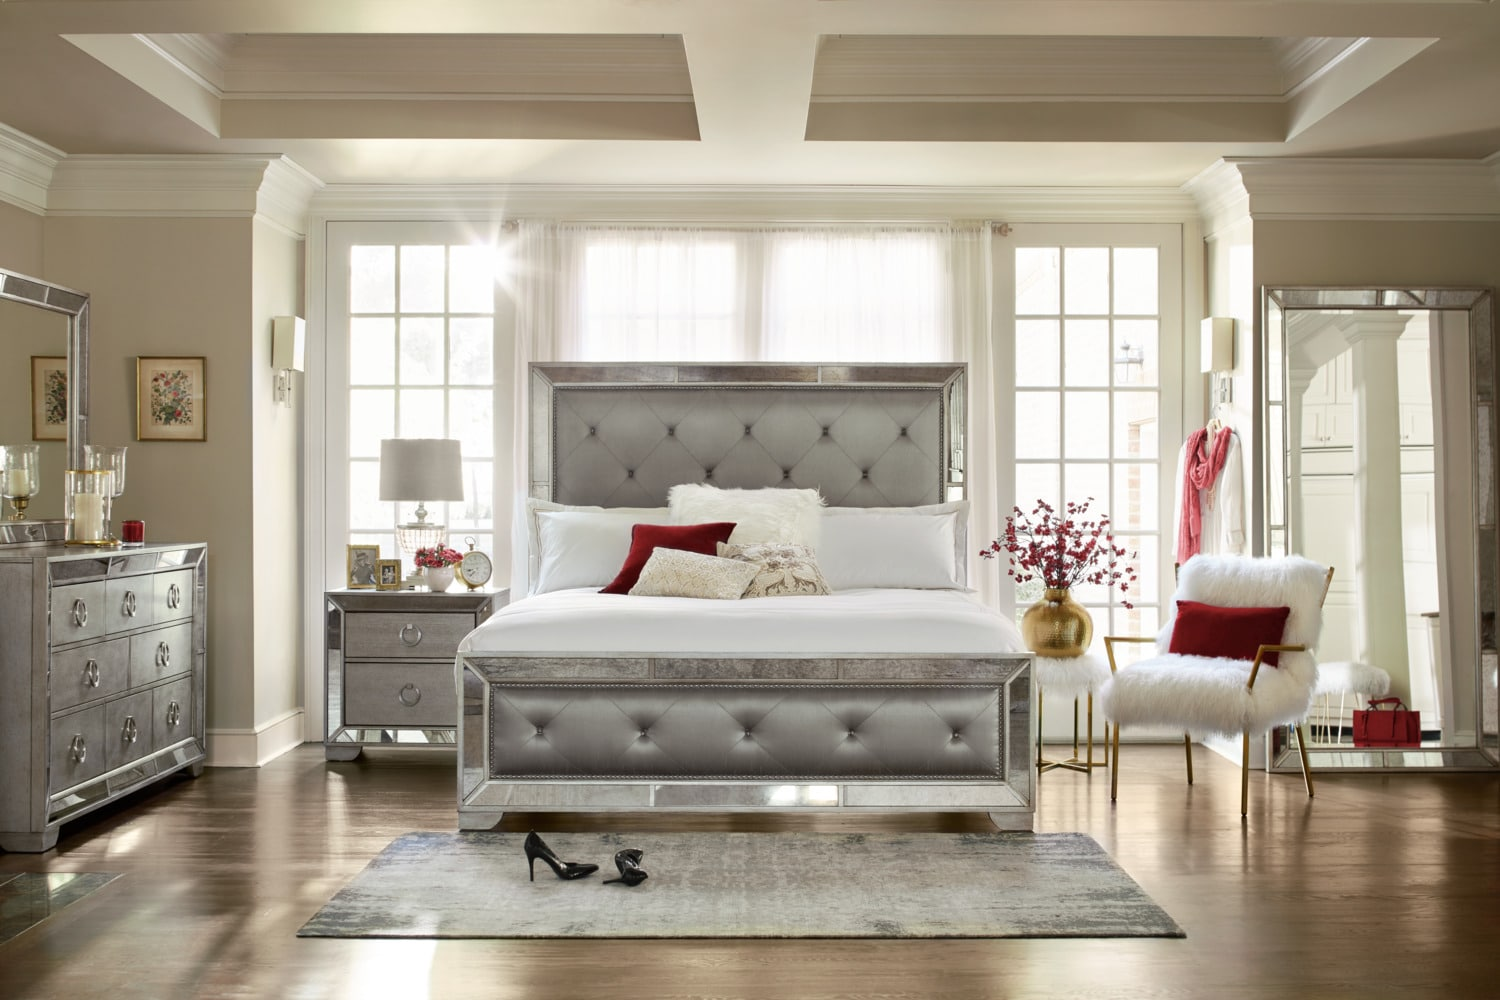 Angelina 5-Piece King Upholstered Bedroom Set - Metallic | Value ...